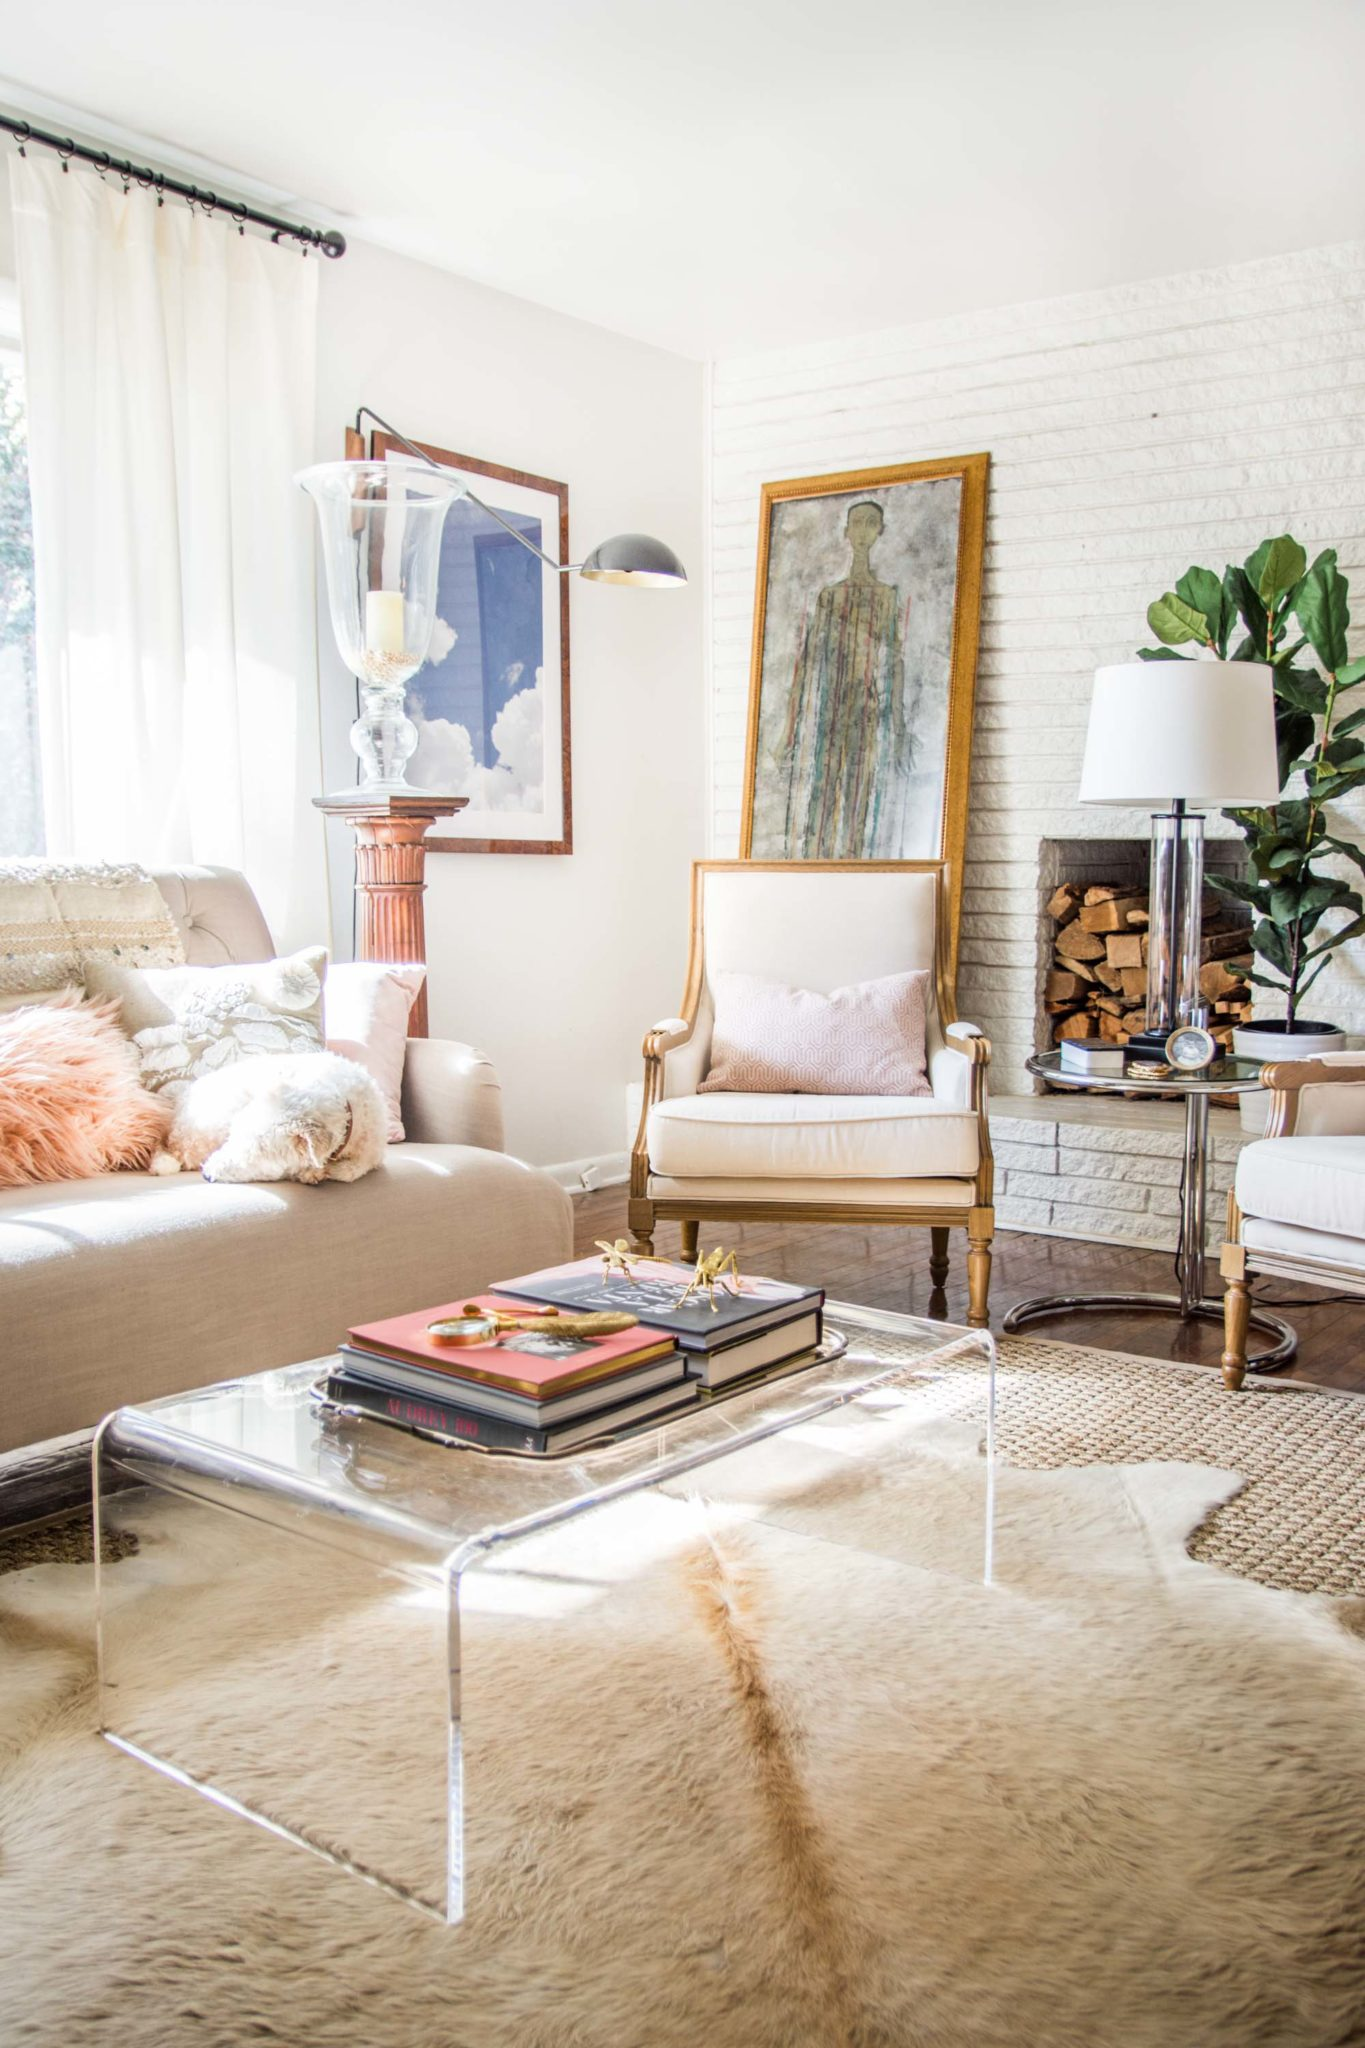 Sofas Around The World Embracing Blush Decor In The Living Room - Thou Swell